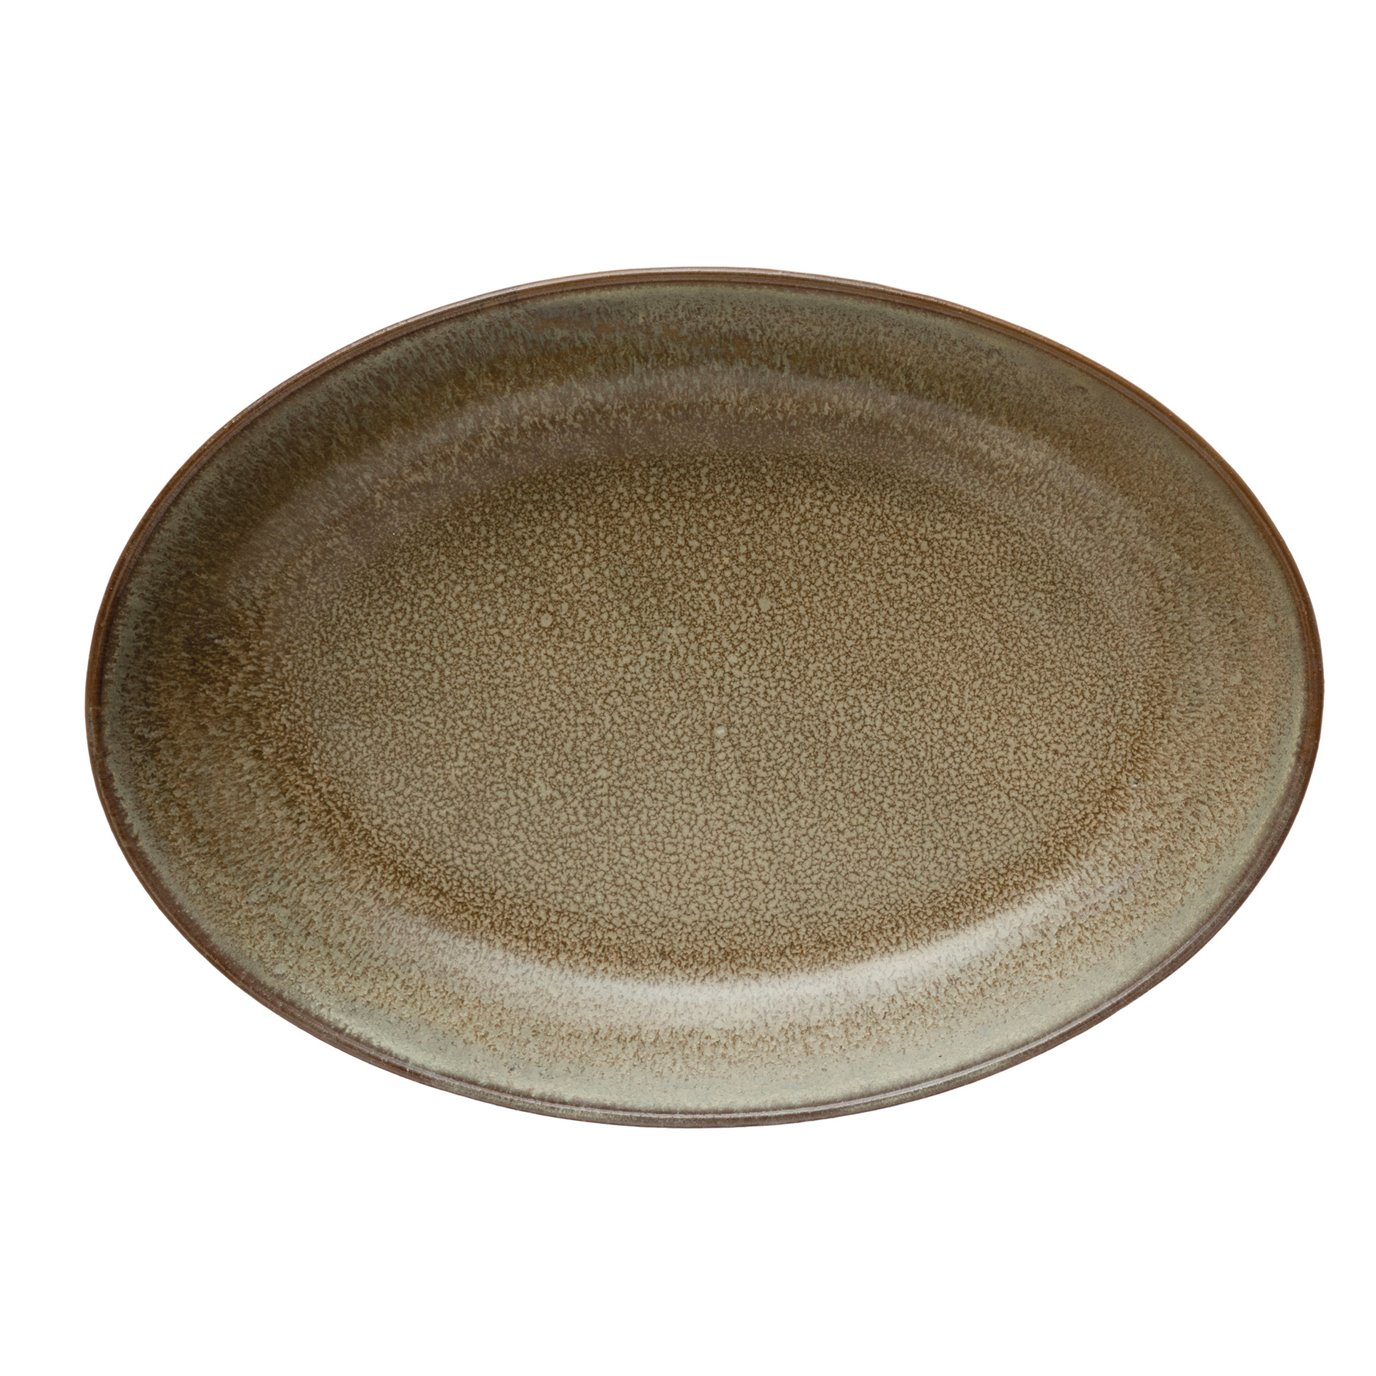 Stoneware Serving Bowl, Reactive Glaze, Brown (Each One Will Vary)